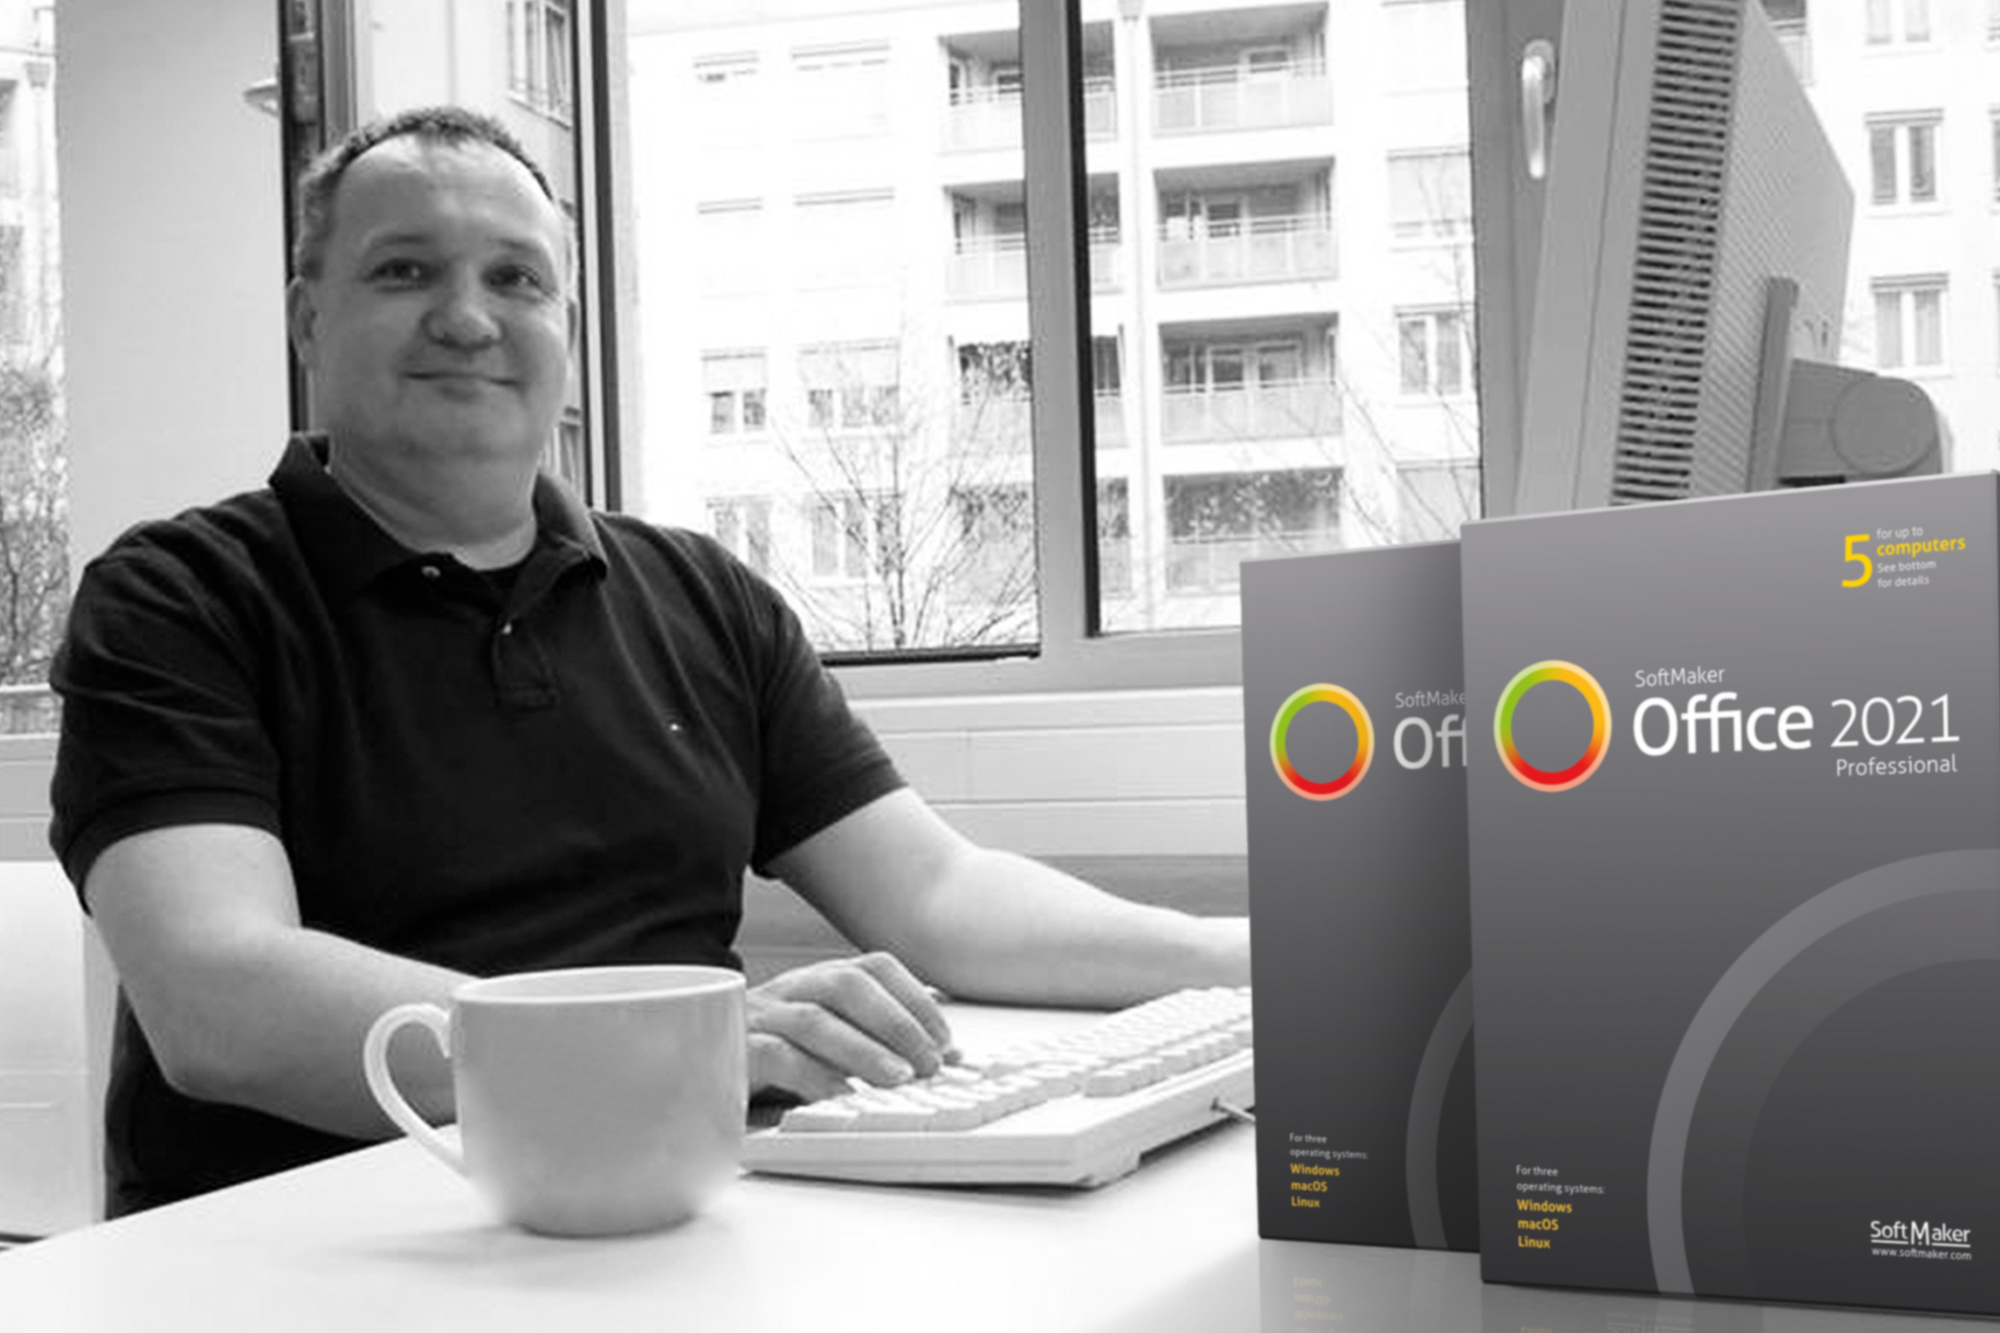 David vs Goliath: Martin Kotulla - the Office Suite maker from Germany